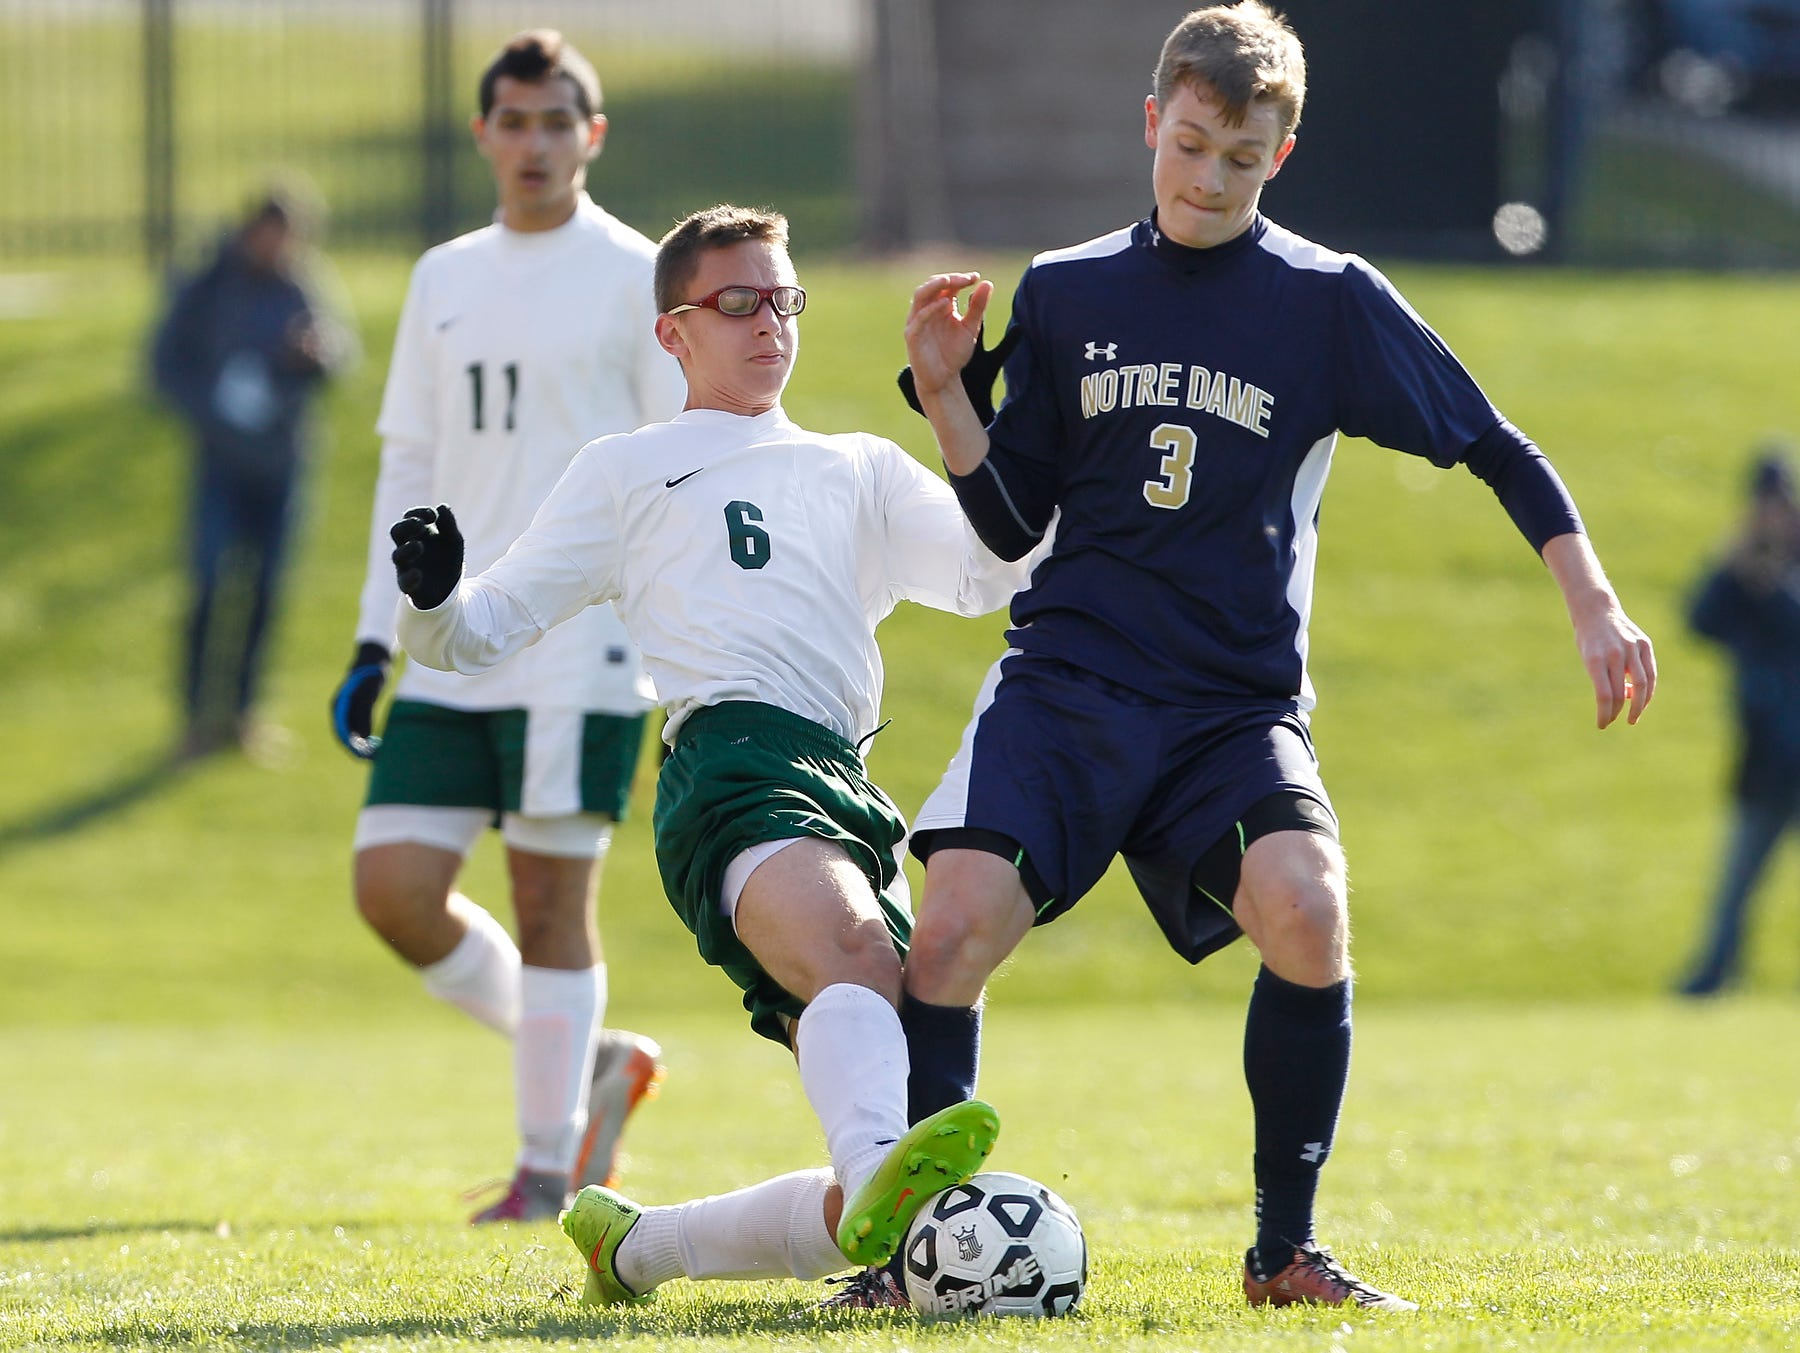 Solomon Schechter's Ben Levin (6) puts a tackle on Alec Cutler (3) during their 9-1 loss to Notre Dame in the NYSPHSAA boys class C soccer final at Middletown High School on Sunday, Nov. 15, 2015.